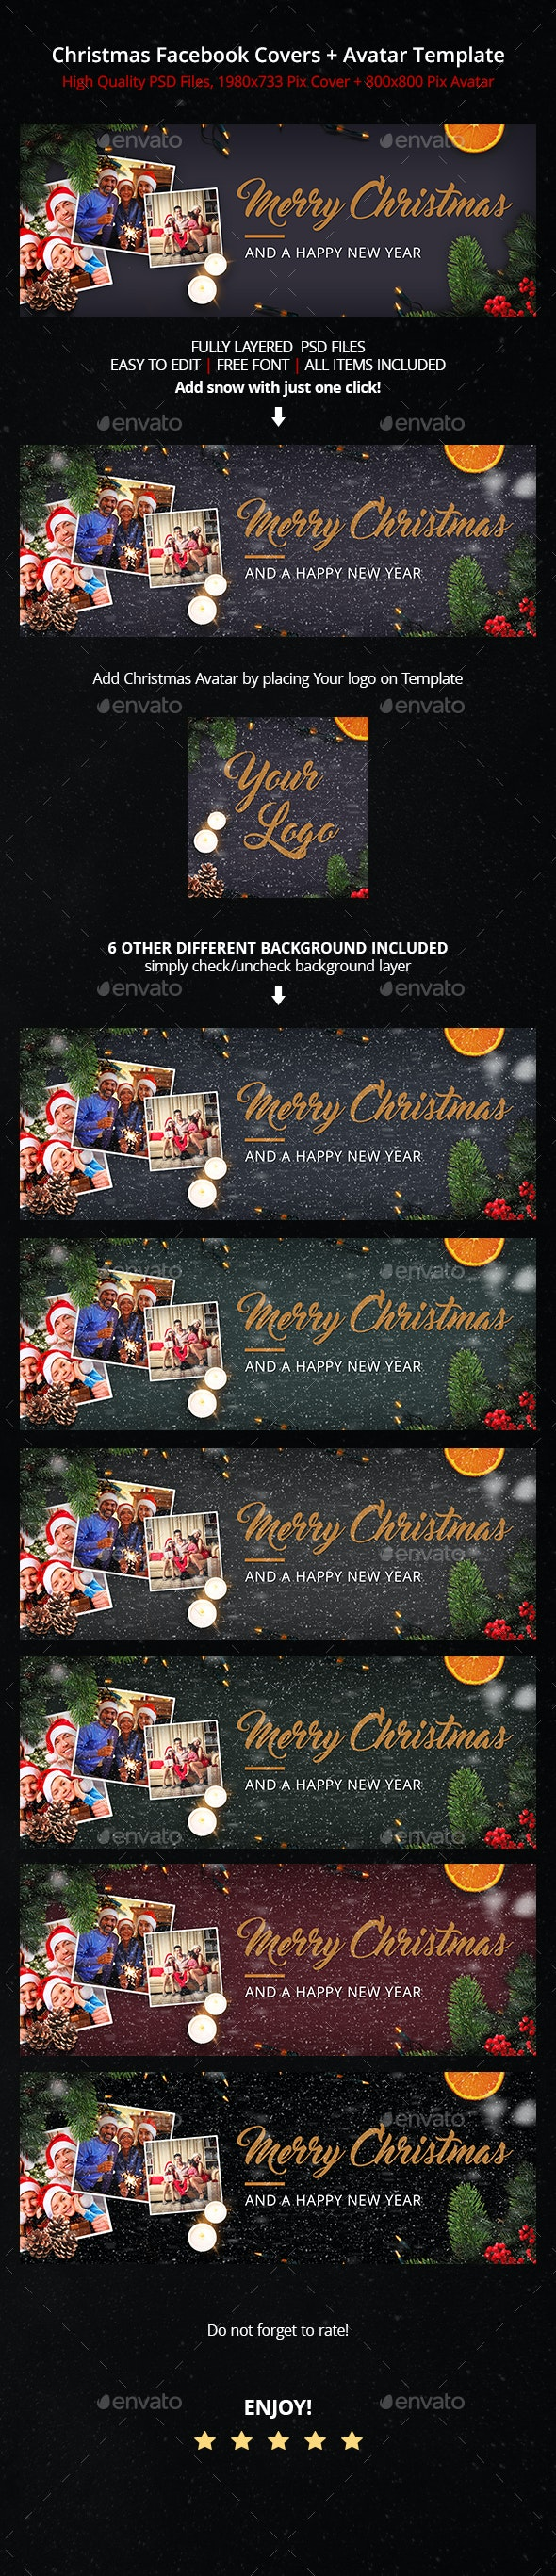 Family Christmas   Facebook Cover - Facebook Timeline Covers Social Media